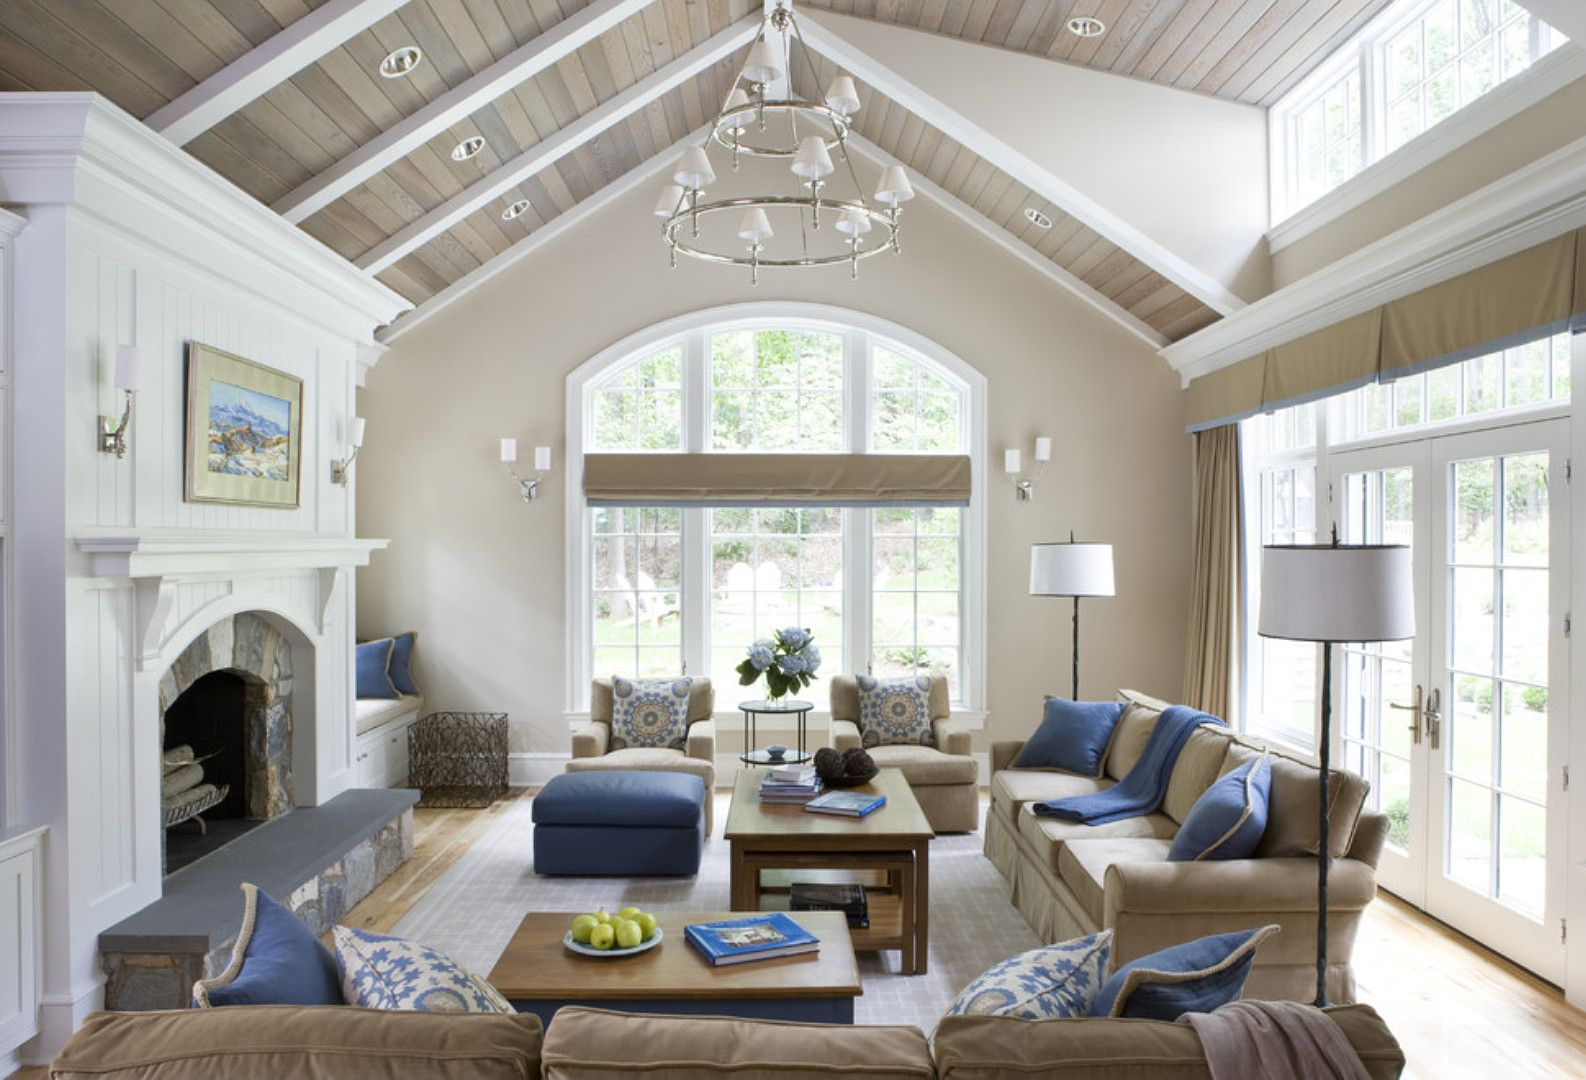 Elegant Living Room Vaulted Ceiling Ideas   Home Building Plans | #1825